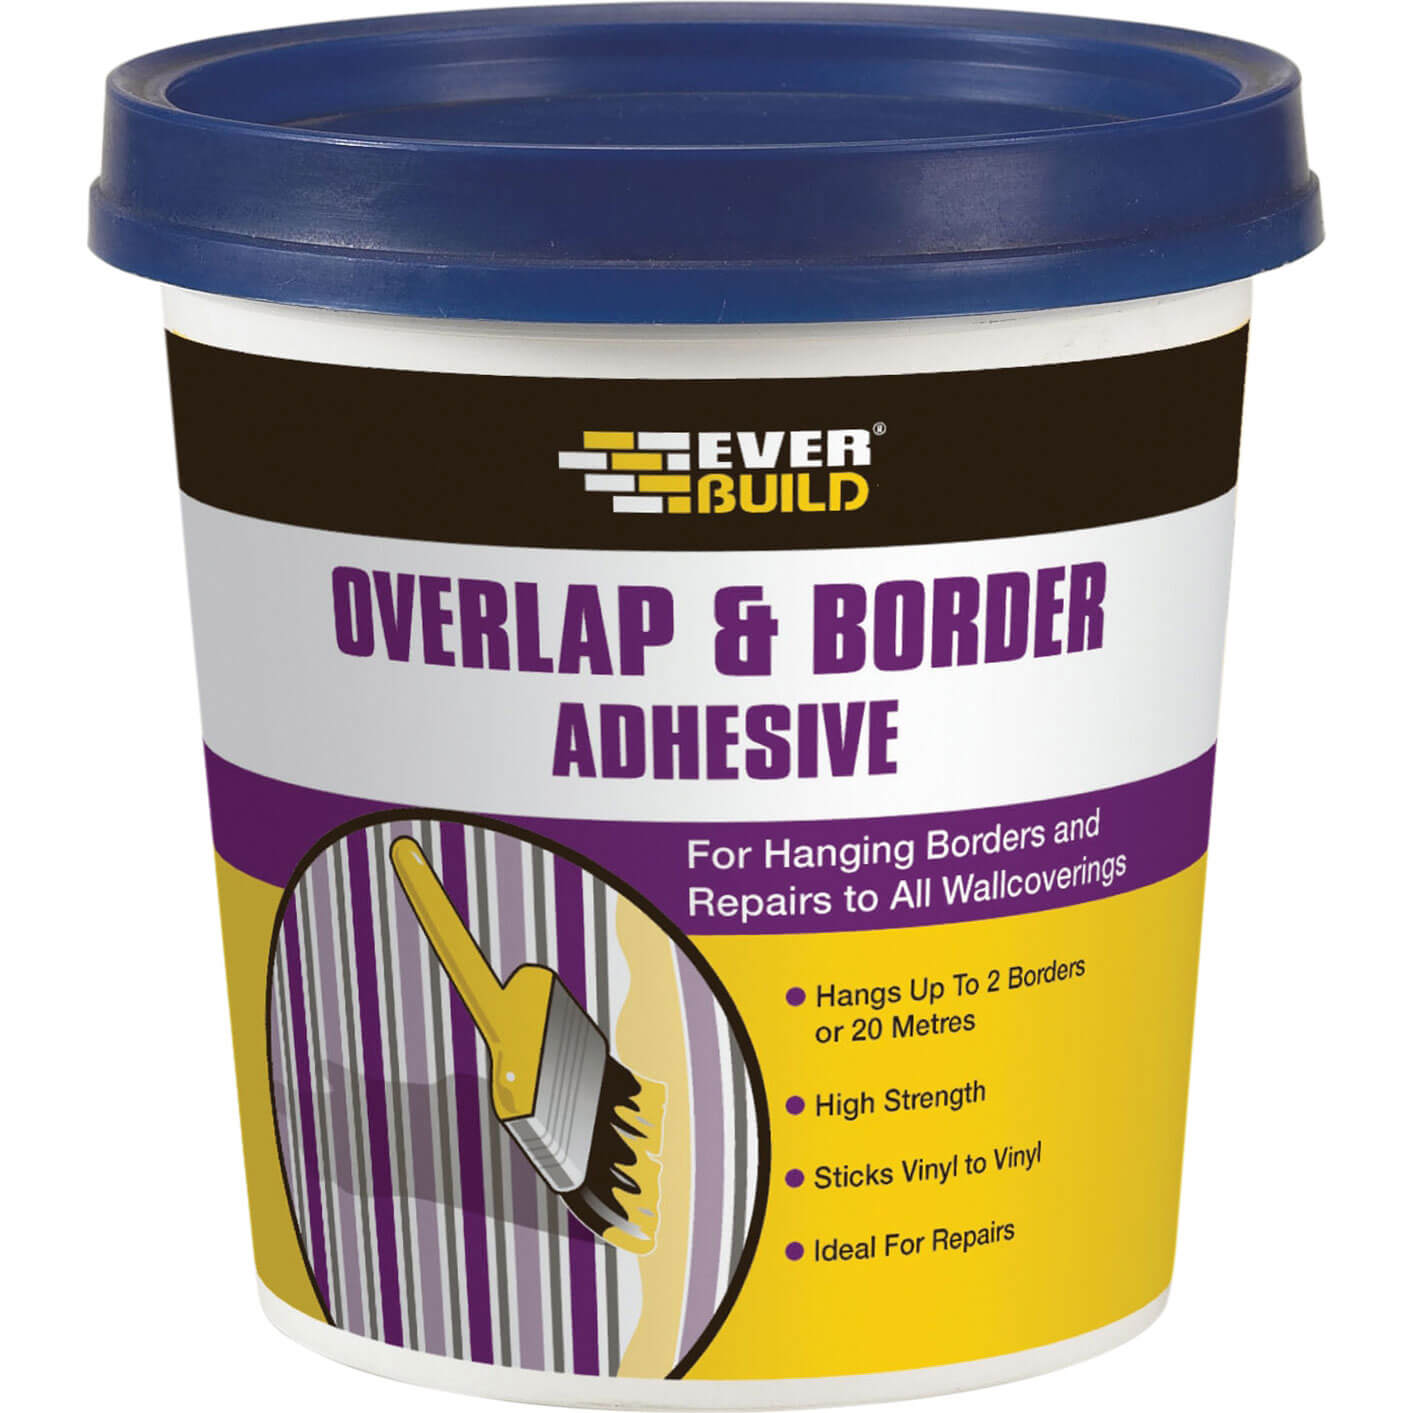 Tooled Up/Sealants & Adhesives/Adhesives/Everbuild Overlap & Border Adhesive 250g